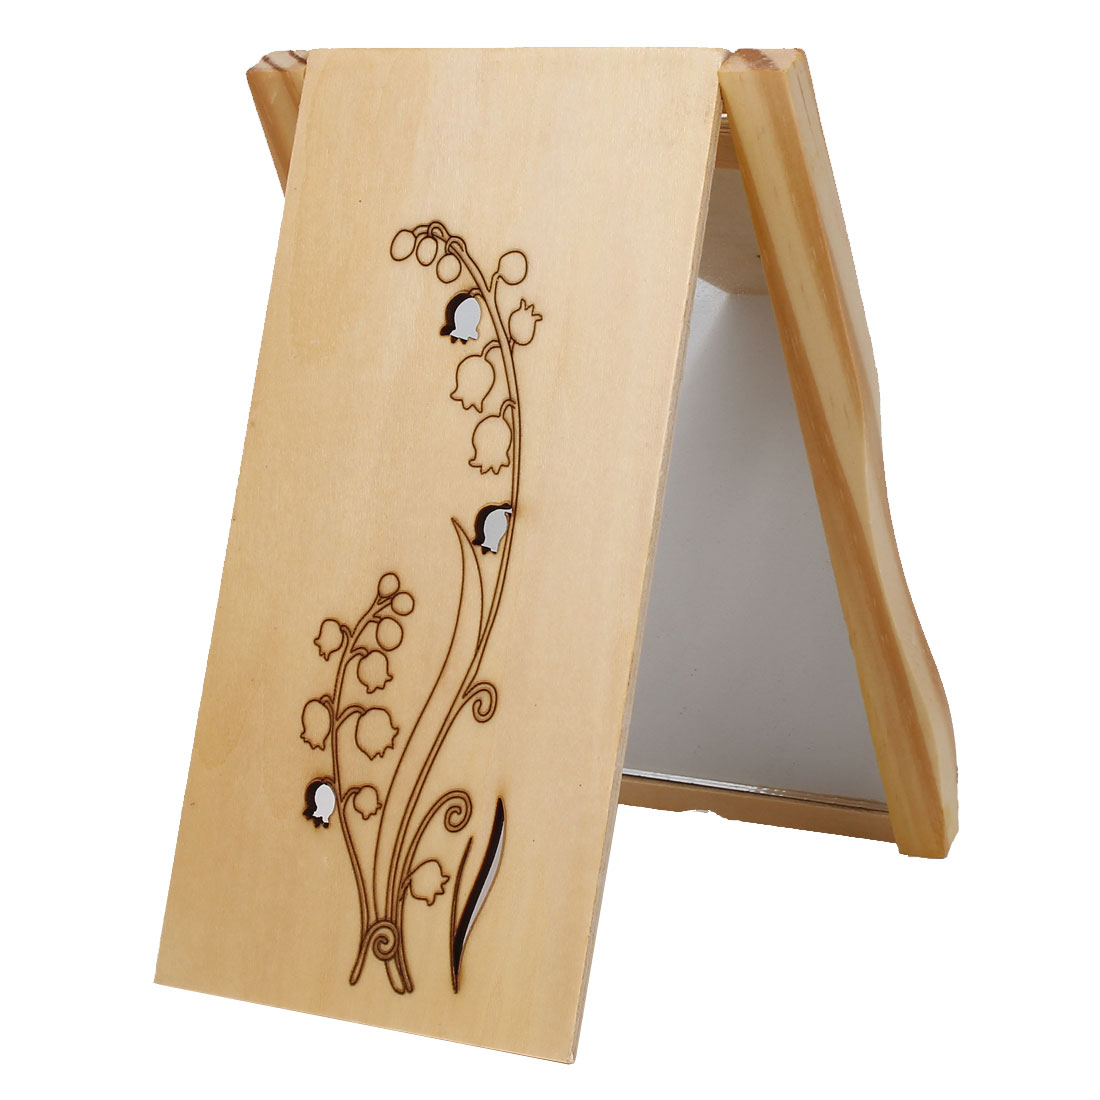 Lily of the Valley Print Rectangle Wooden Folding Compact Cosmetic Makeup Mirror